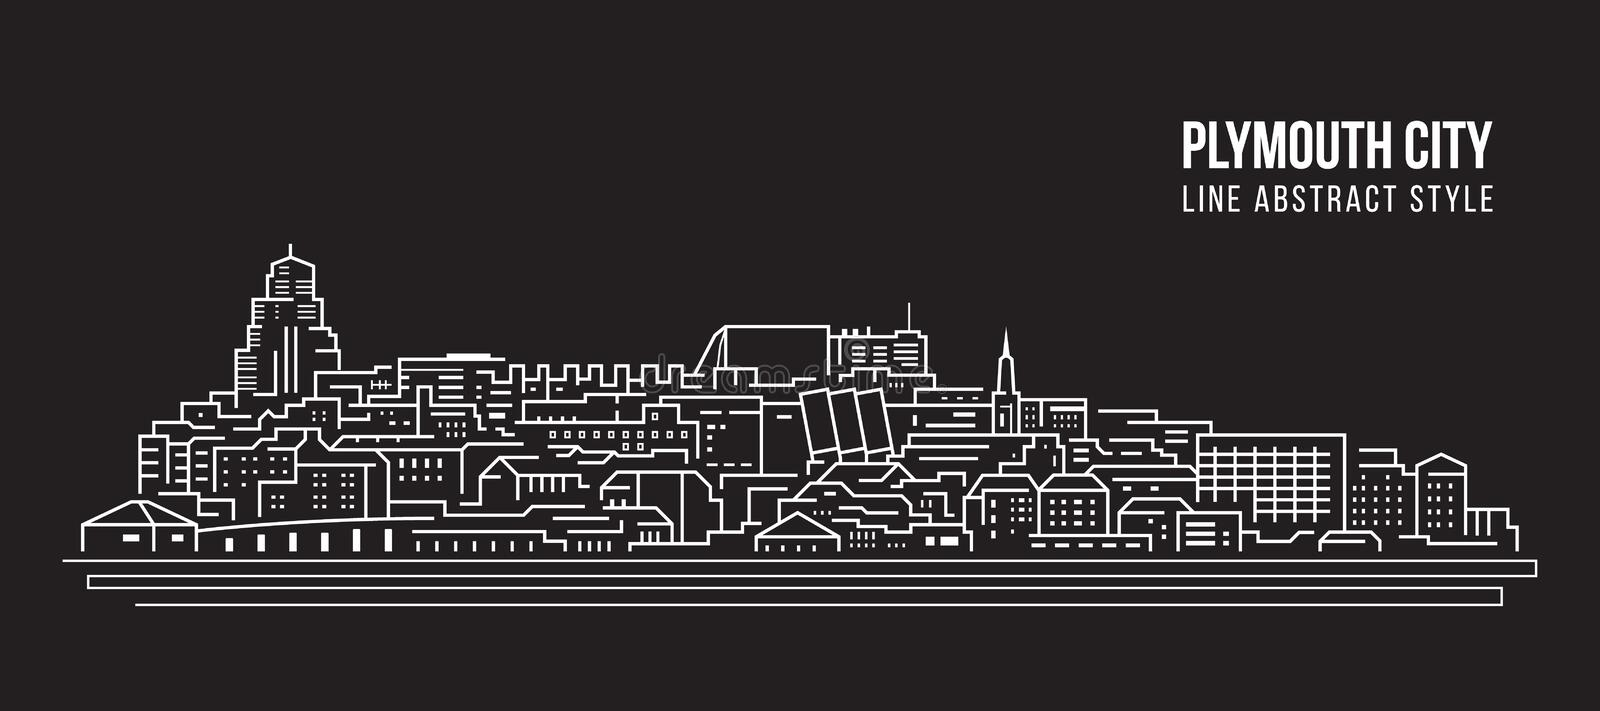 Cityscapebyggnadslinje design för konstvektorillustration - Plymouth stad stock illustrationer